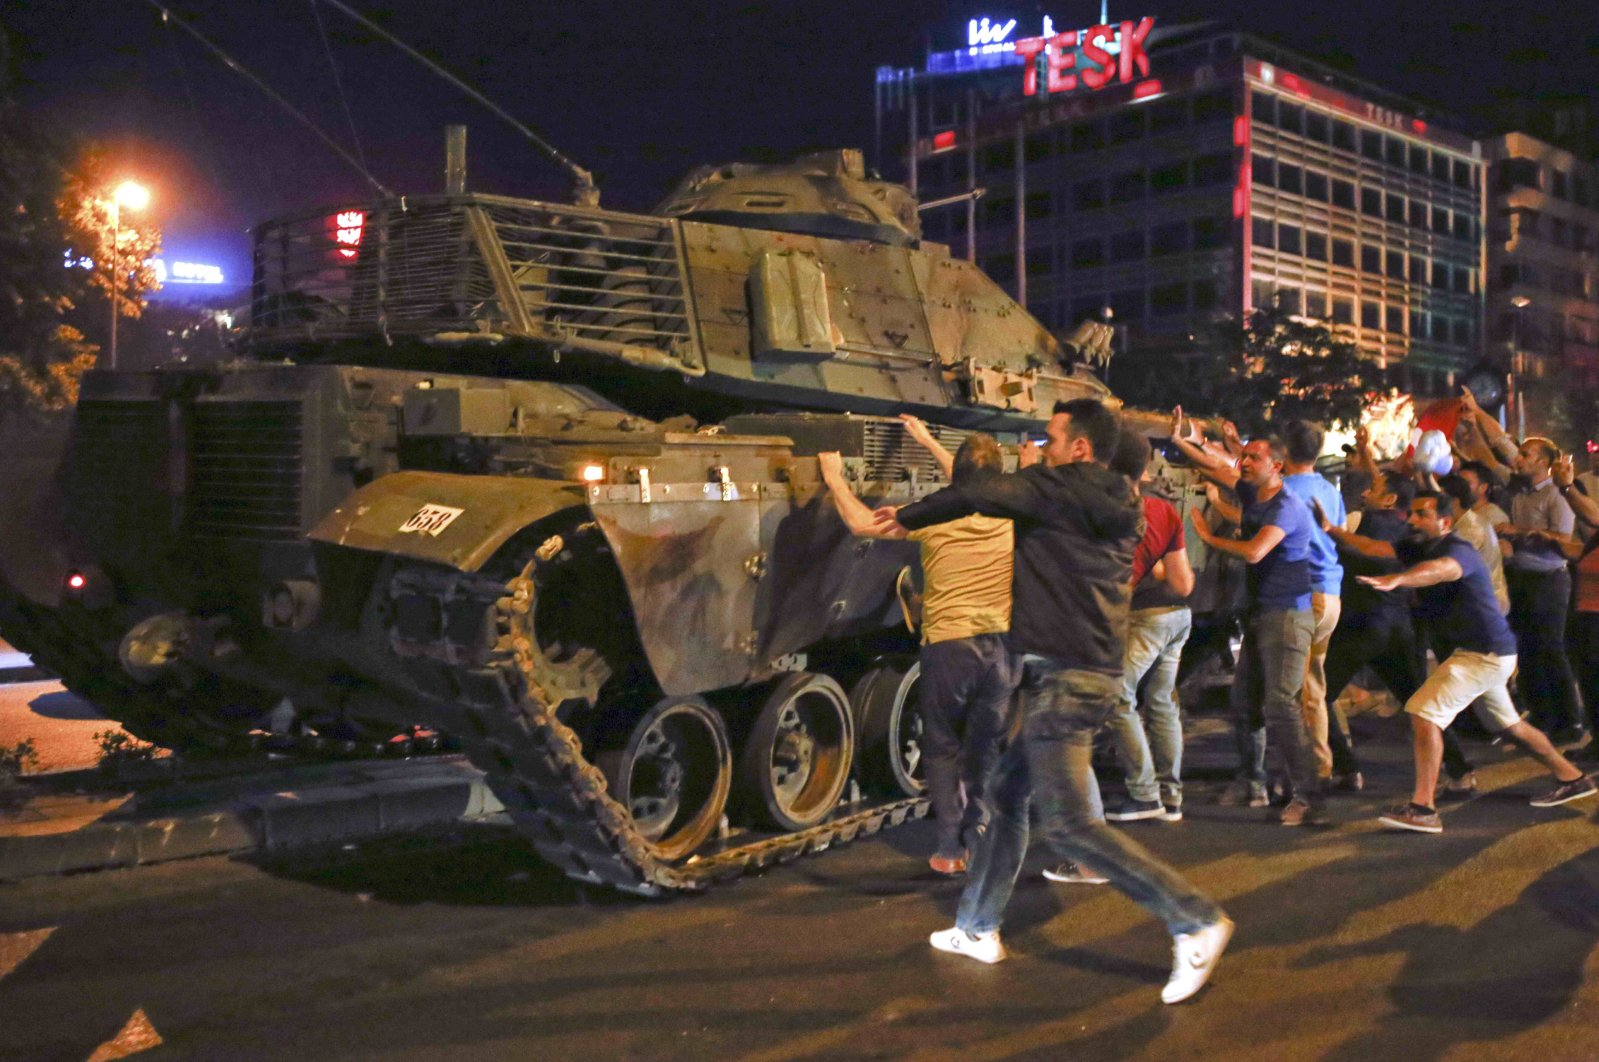 People confront a tank during the failed coup attempt, in Ankara, Turkey, July 16, 2016. (Reuters Photo)